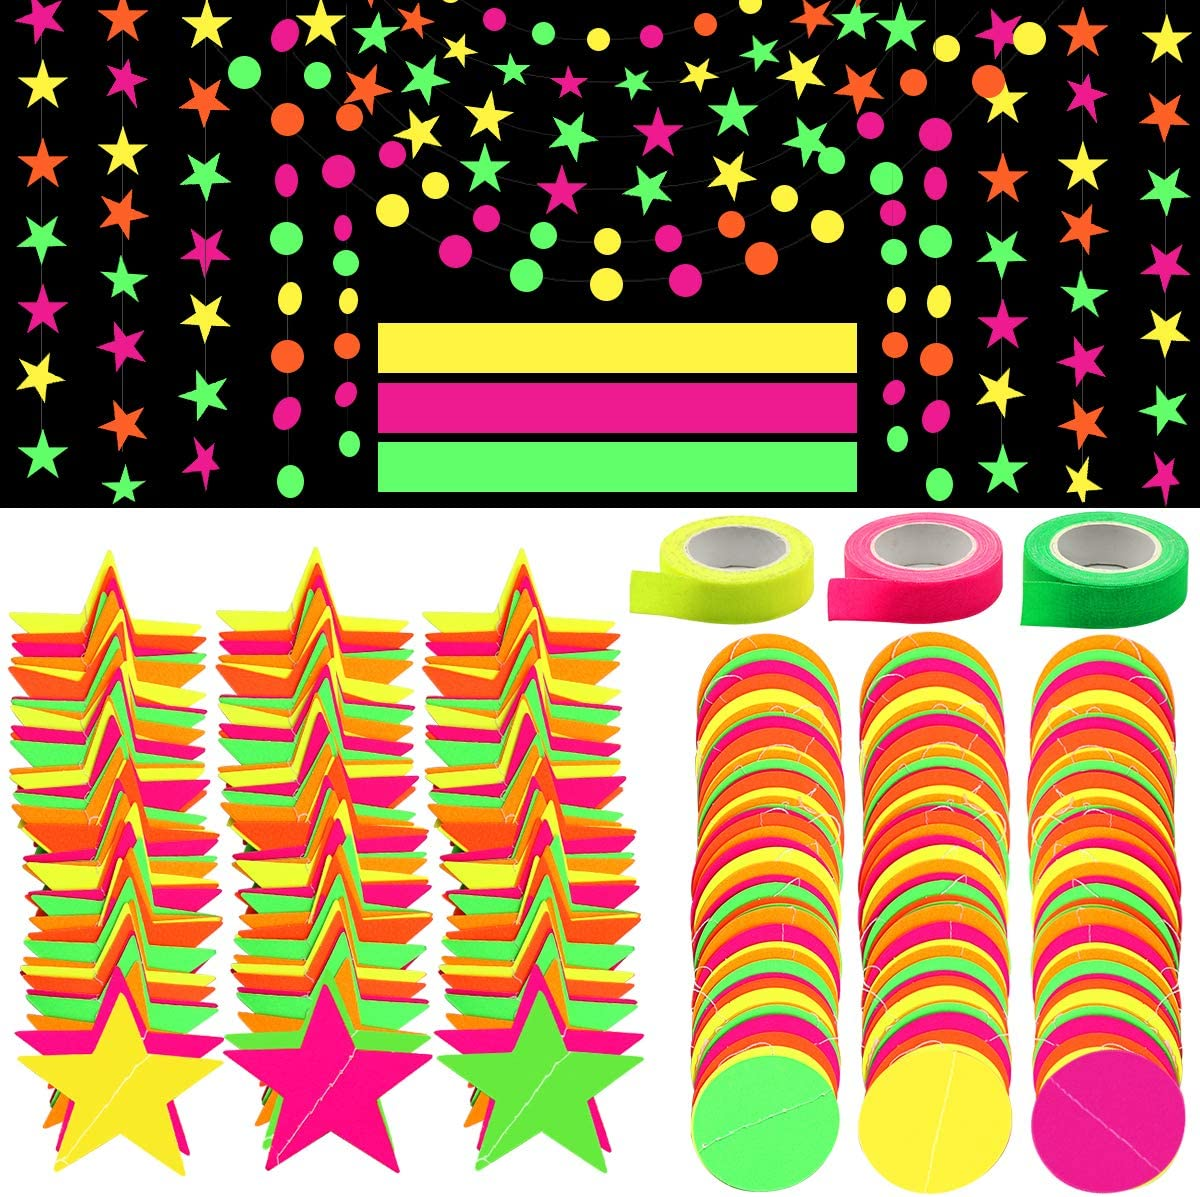 Black Light Party Supply, ZALALOVA 135.6ft Black Light Neon Star Circle Dots Tapes Banner Hanging Decorations Glow in the Dark Reactive UV Light for Party Birthday Christmas Night Decorations (9 Pack)